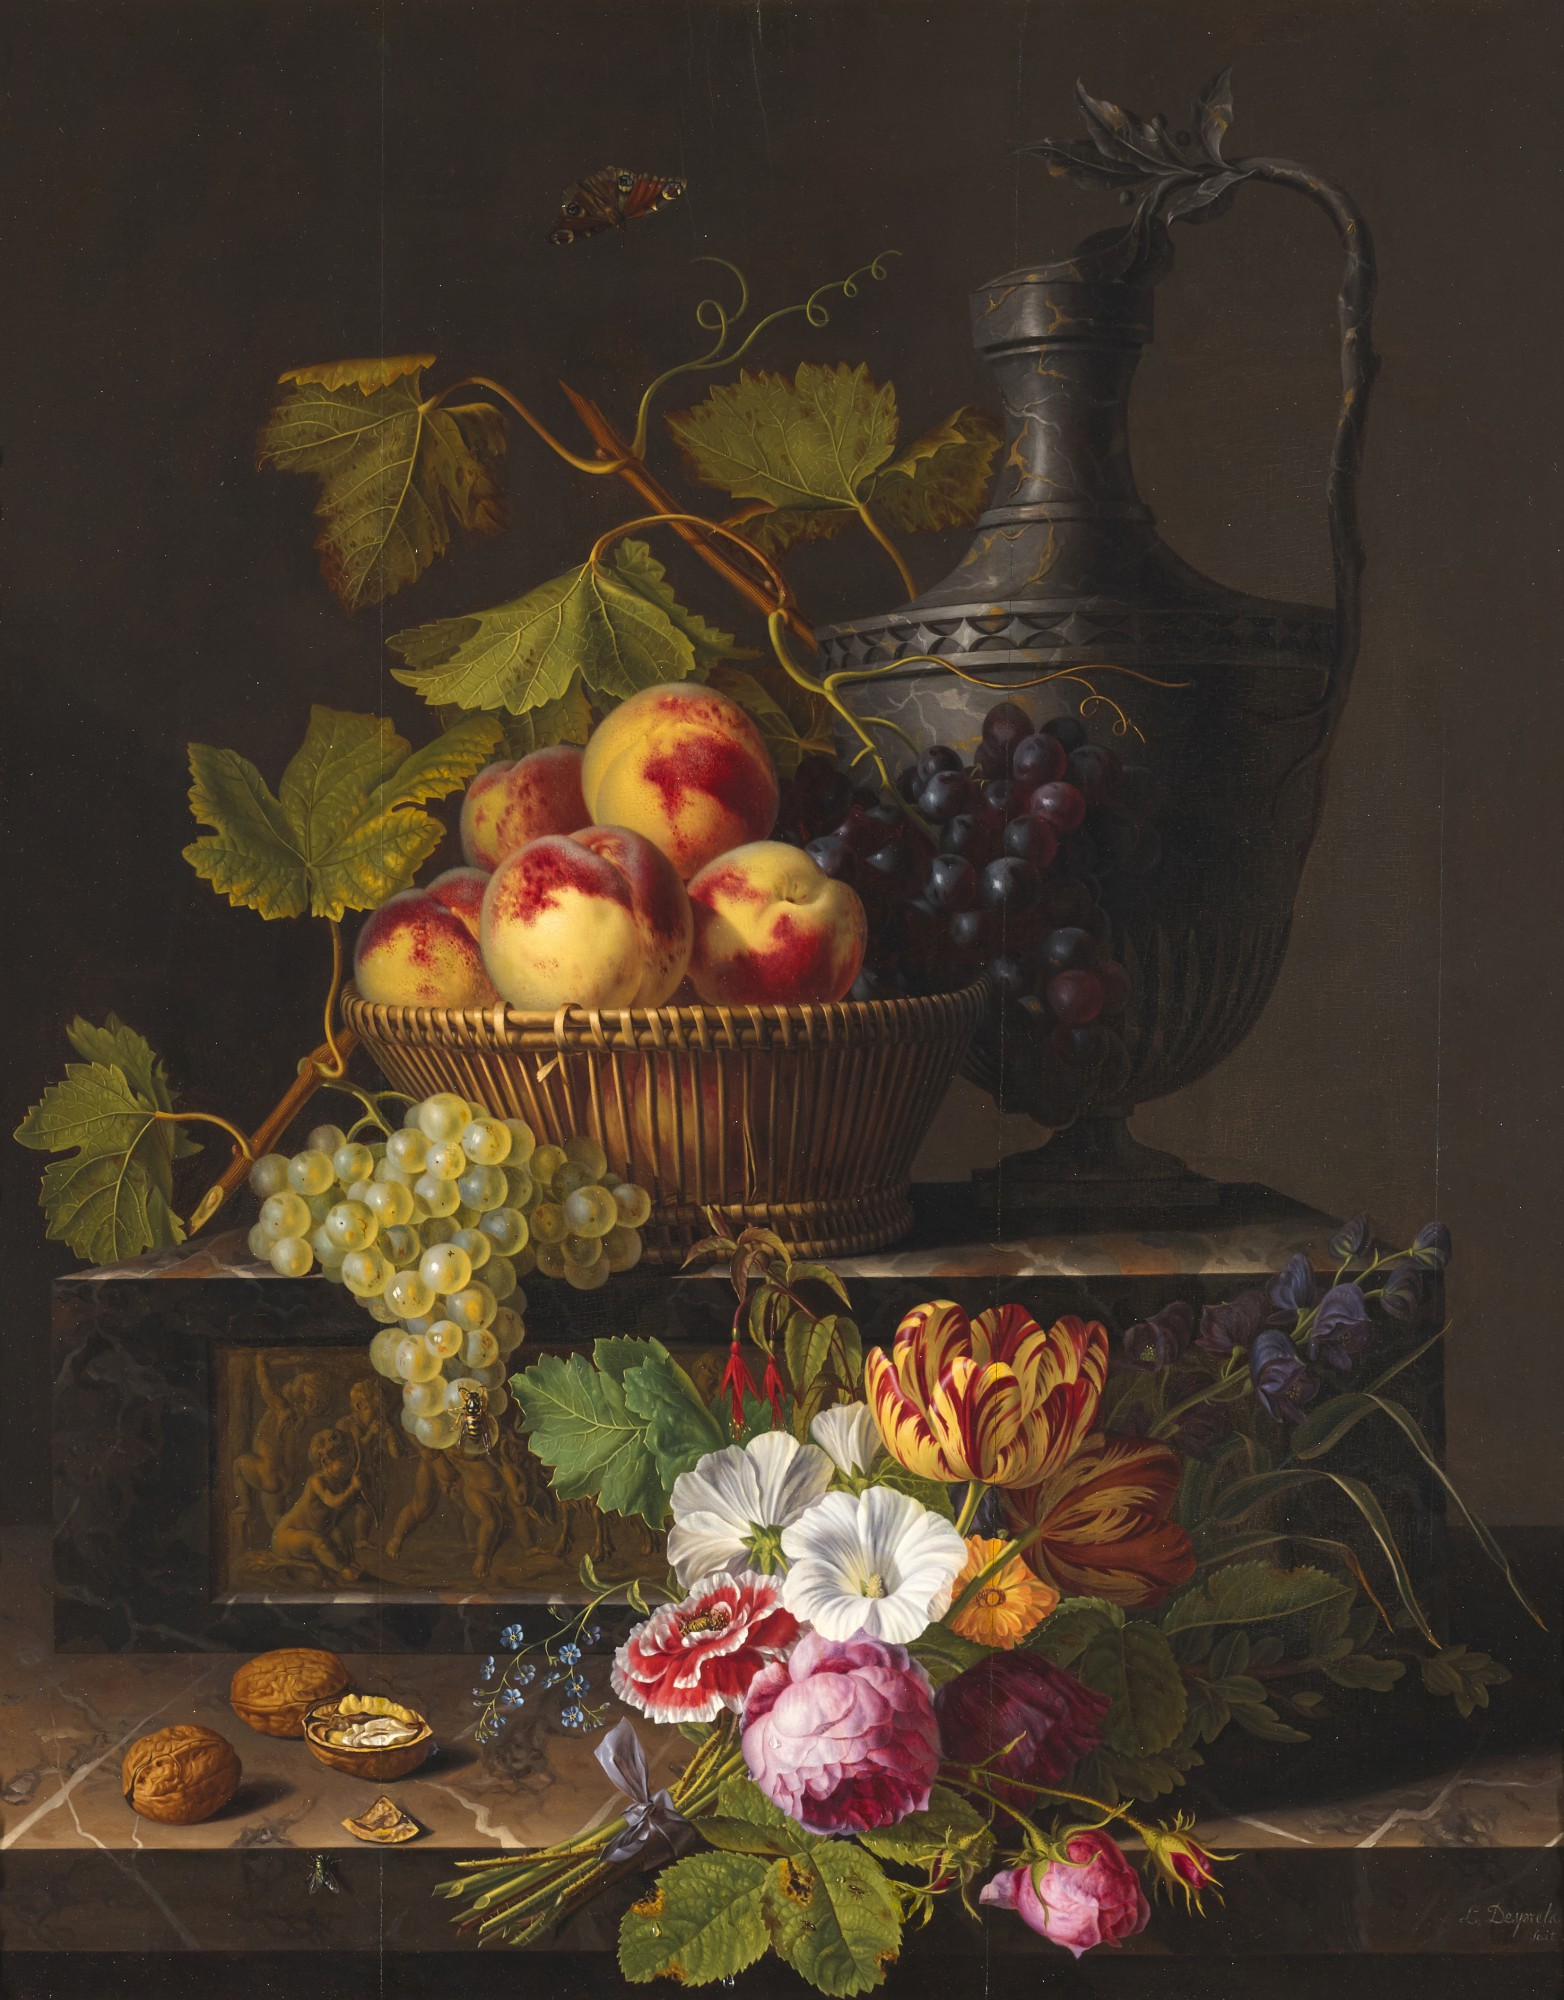 L. DESPRETS FRENCH, 19TH CENTURY | Still life with peaches, grapes, flowers and walnuts